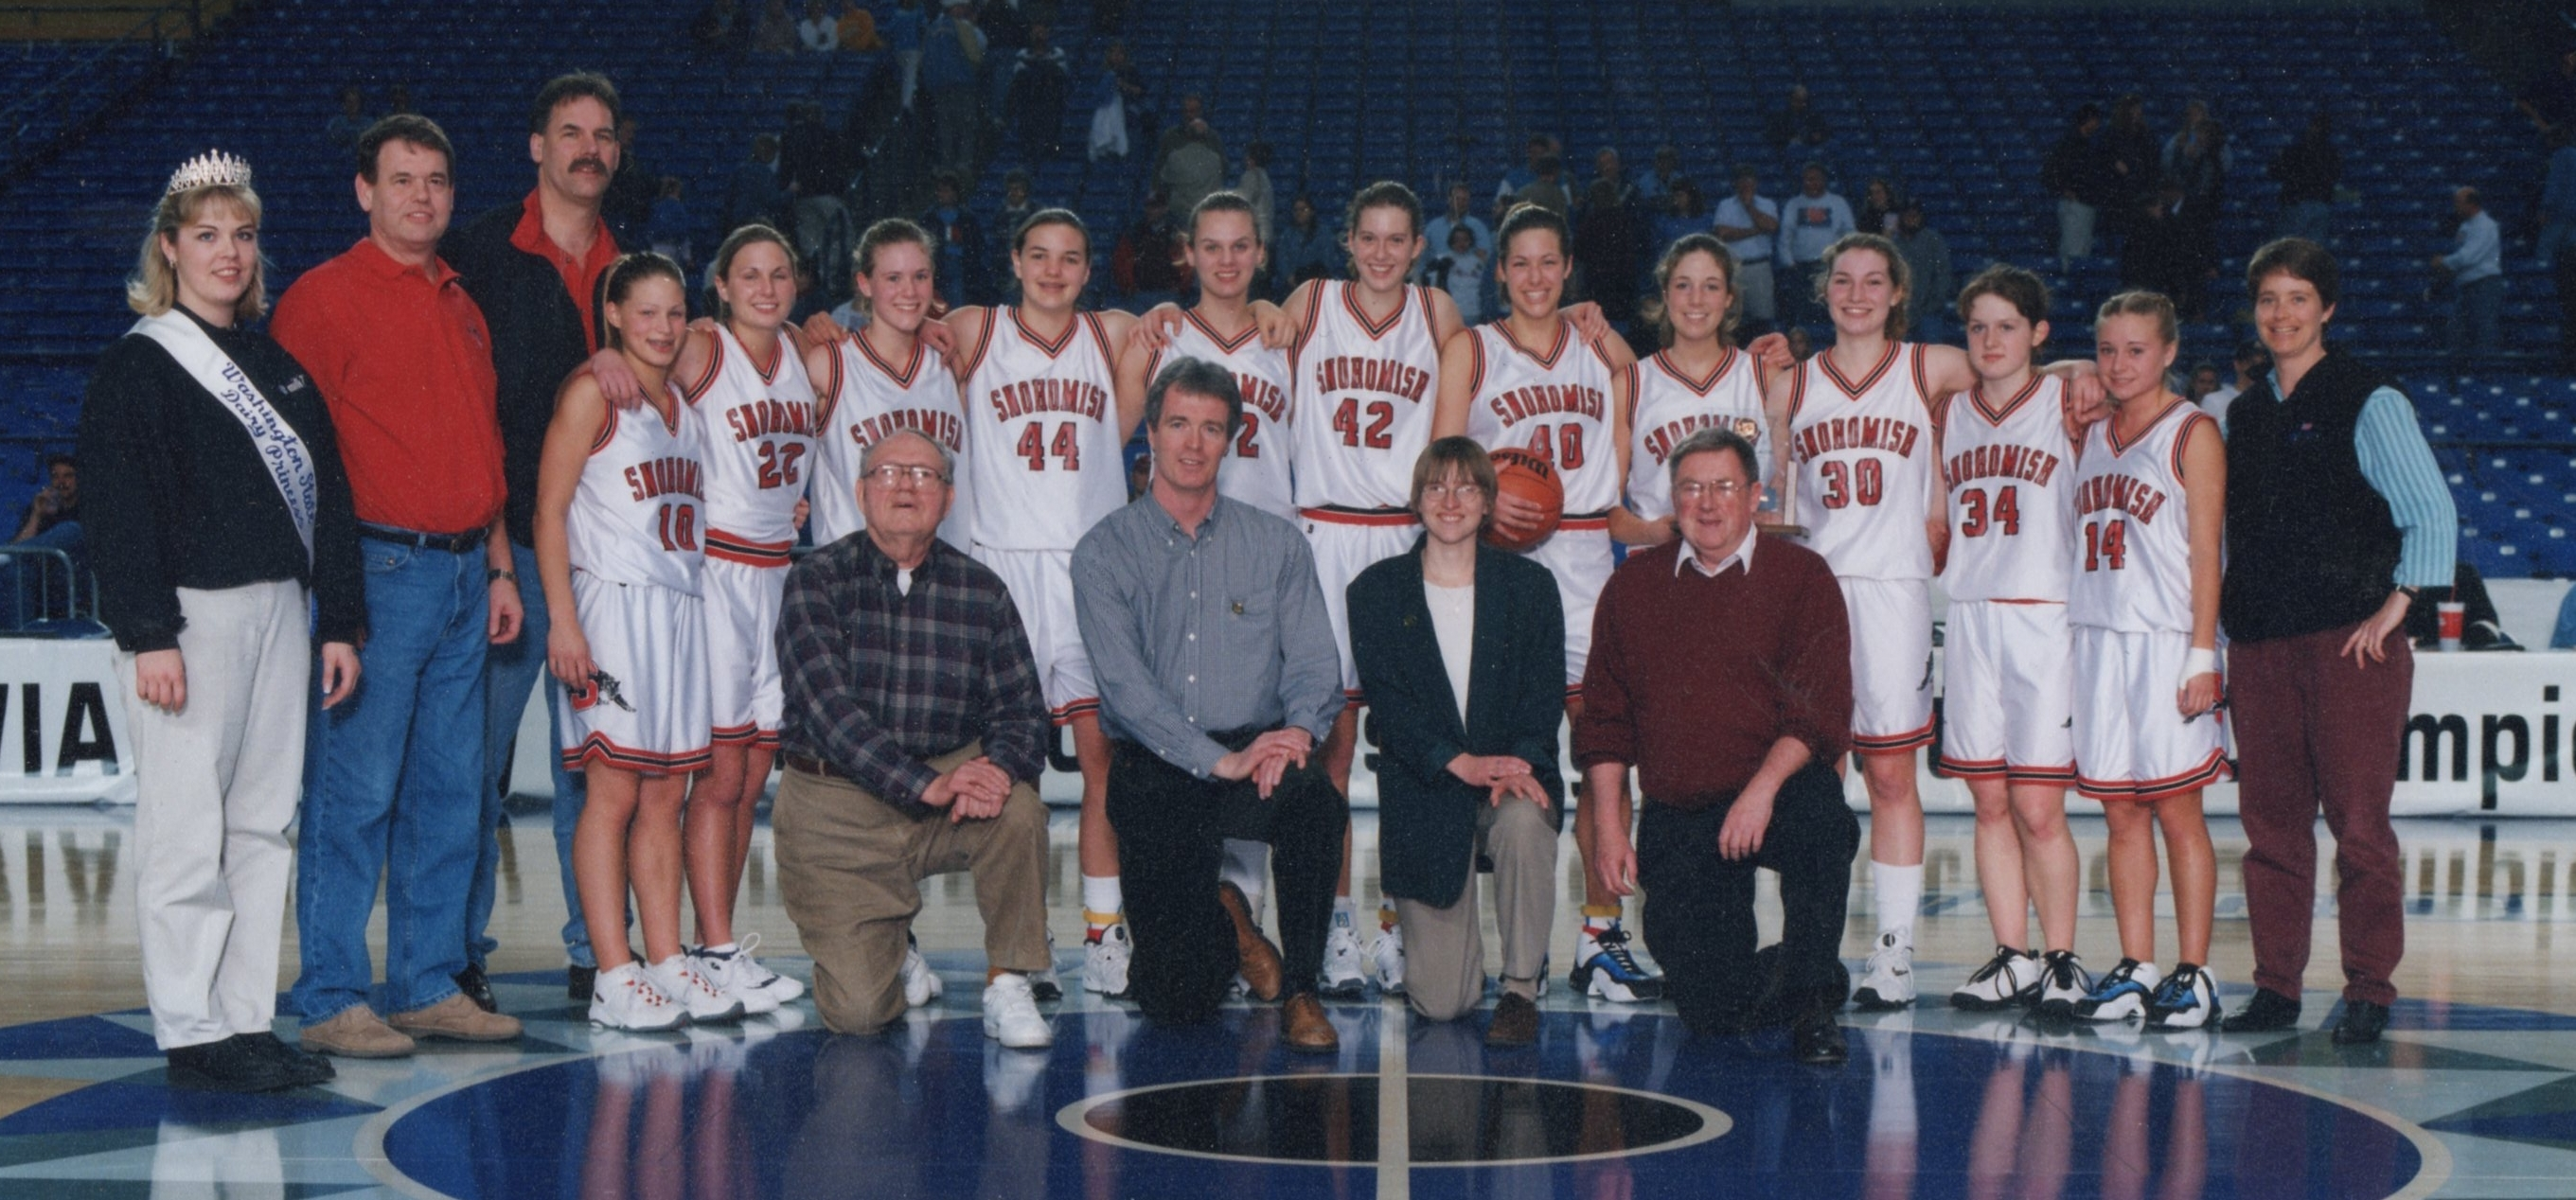 1999-2000 SHS girls (WIAA photo)